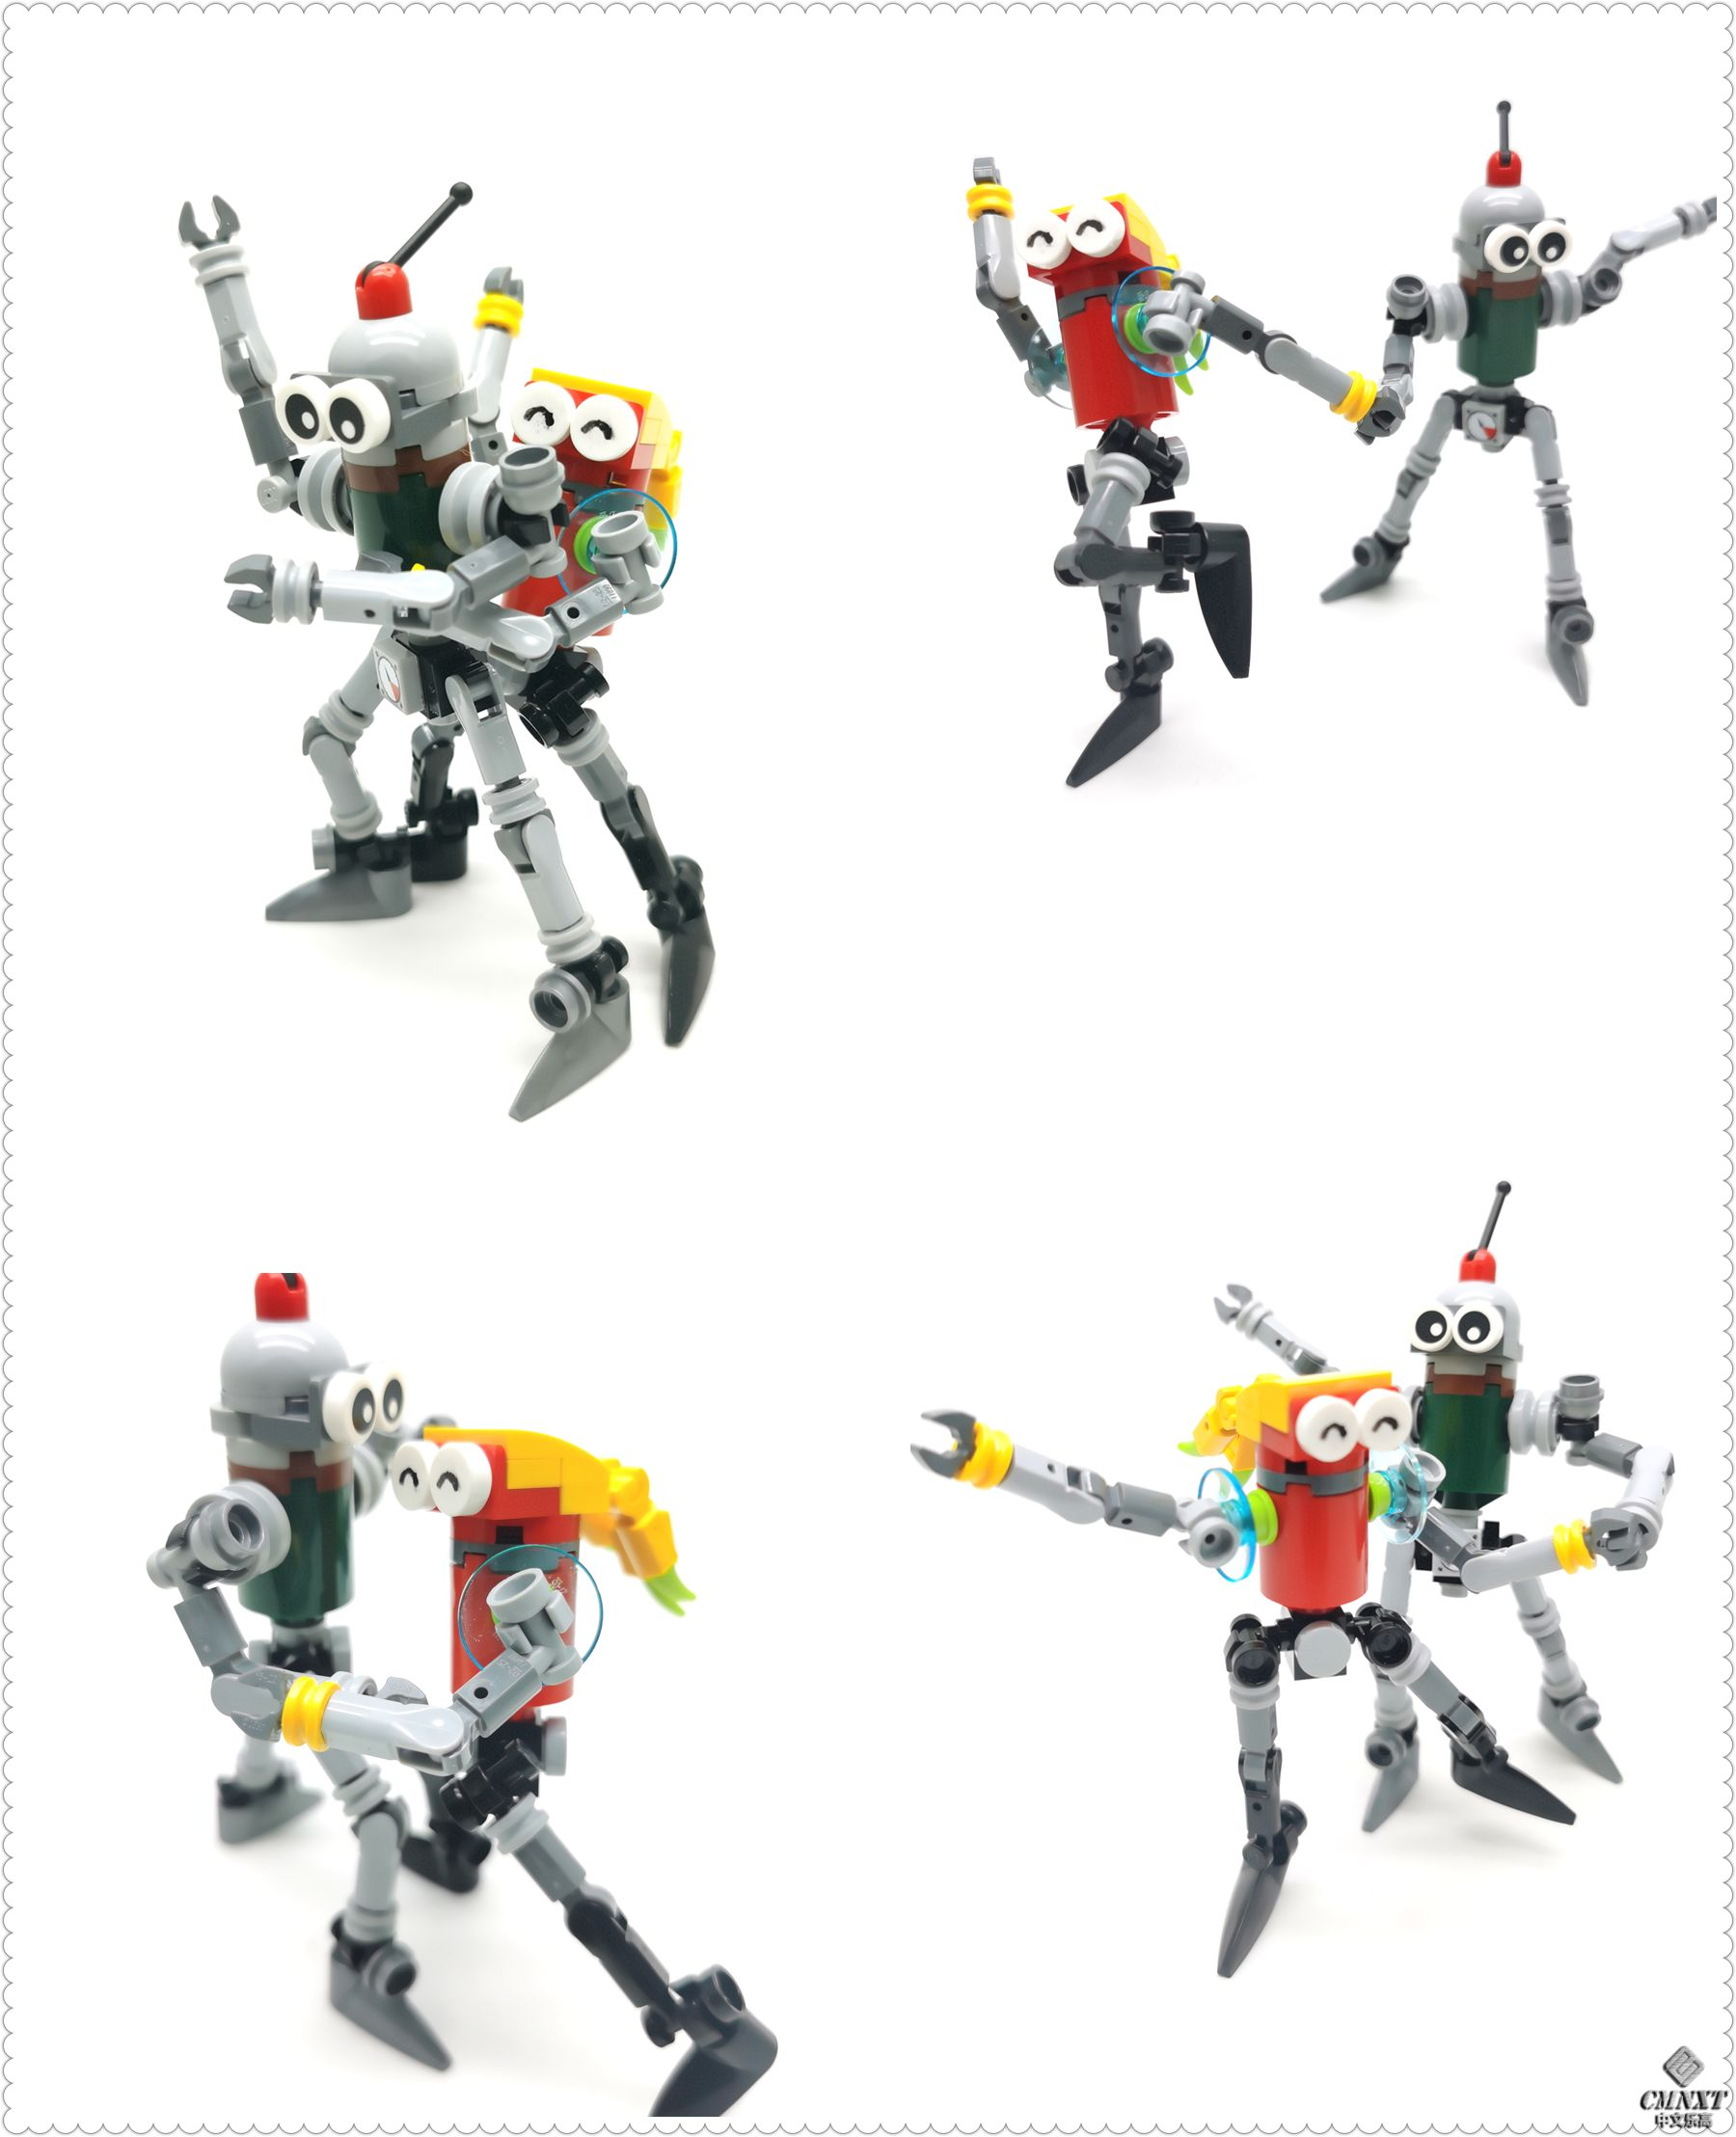 MOC - 钢舞轻盈 Graceful dancing of Steel conso 03.jpg